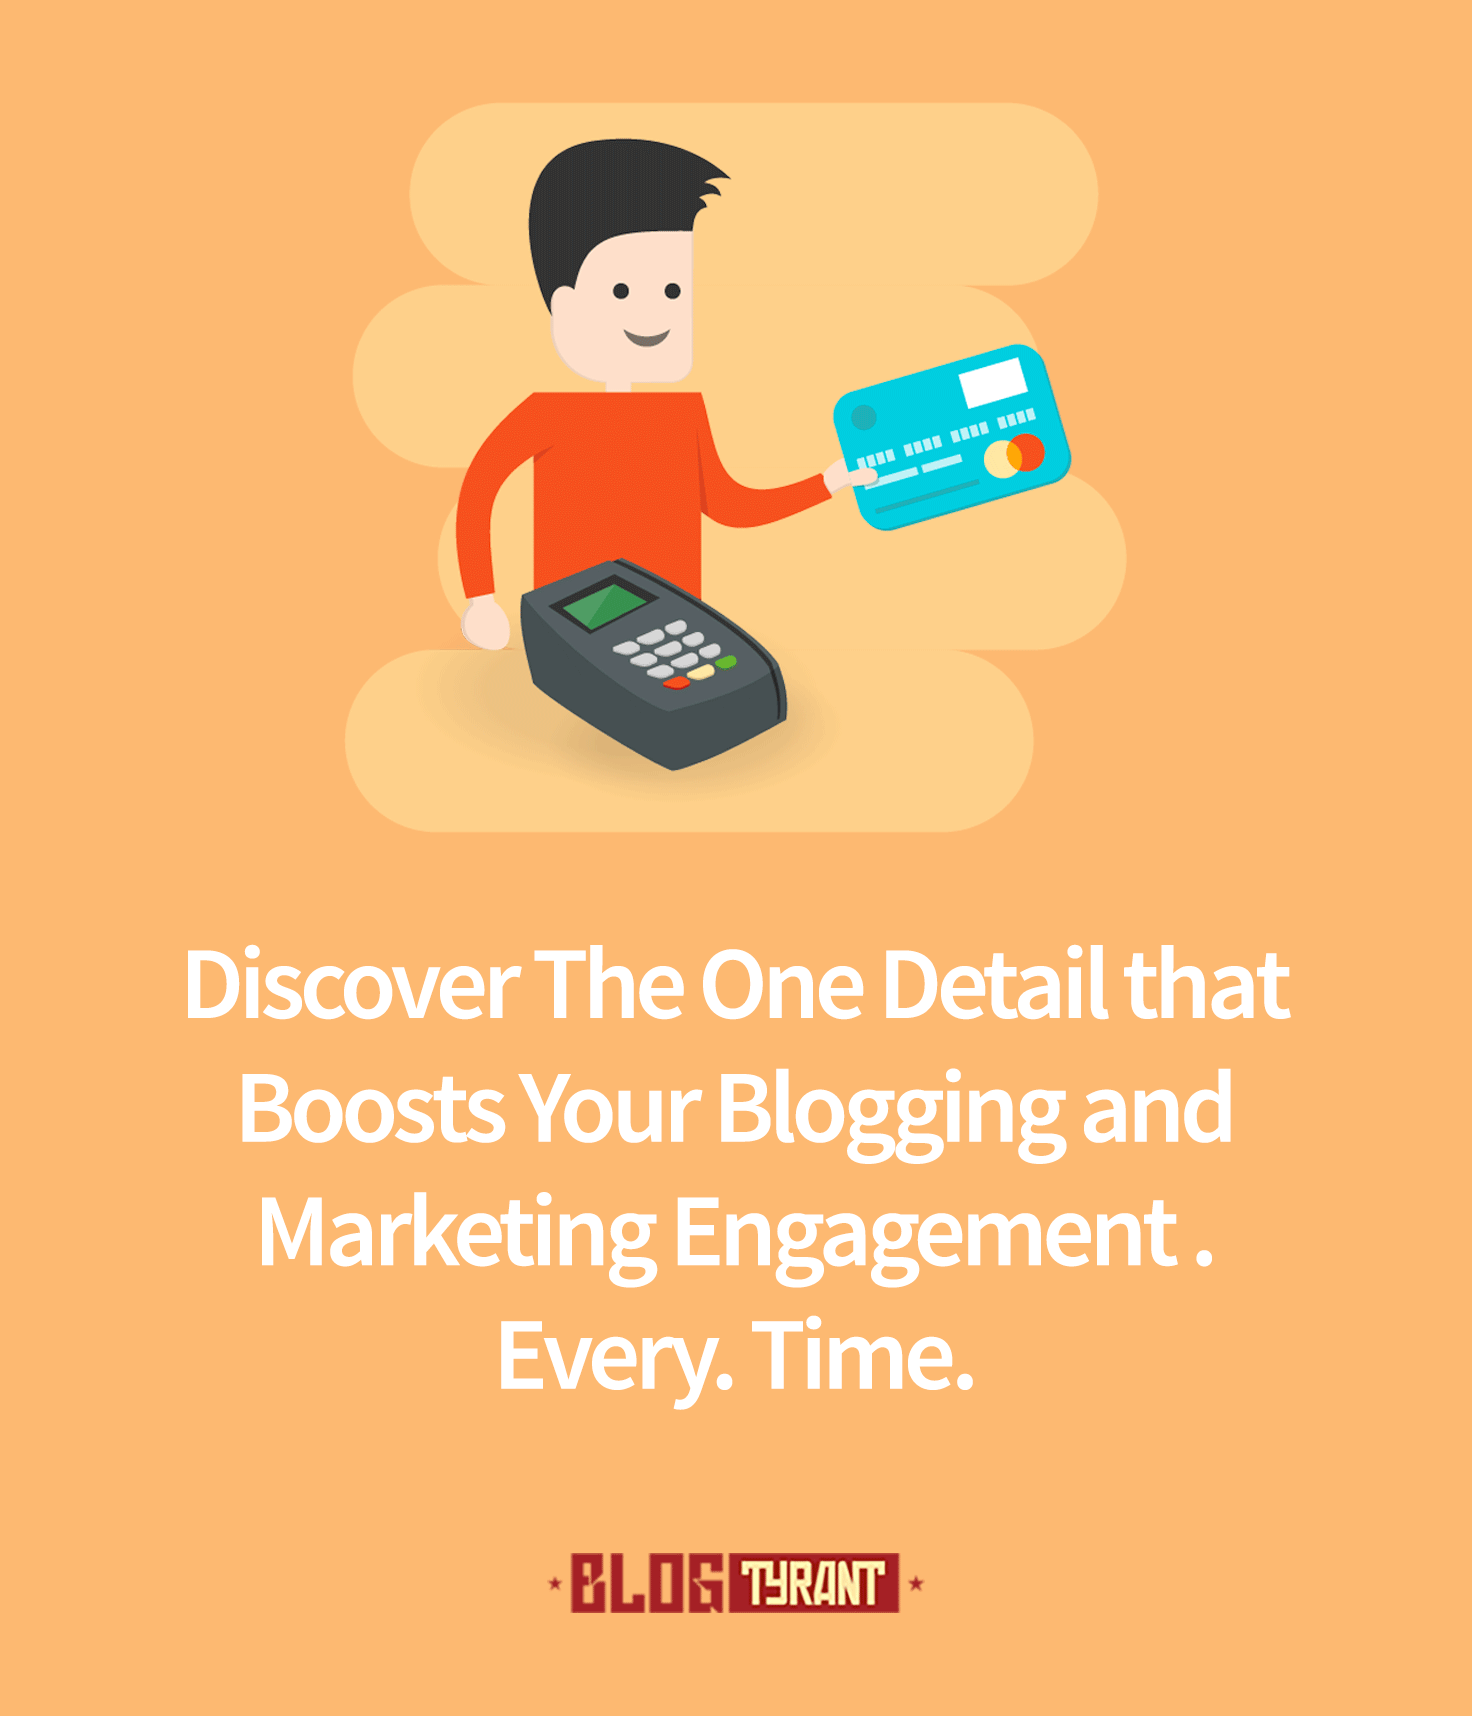 Discover The One Detail that Boosts Your Blogging and Marketing Engagement – Every Time